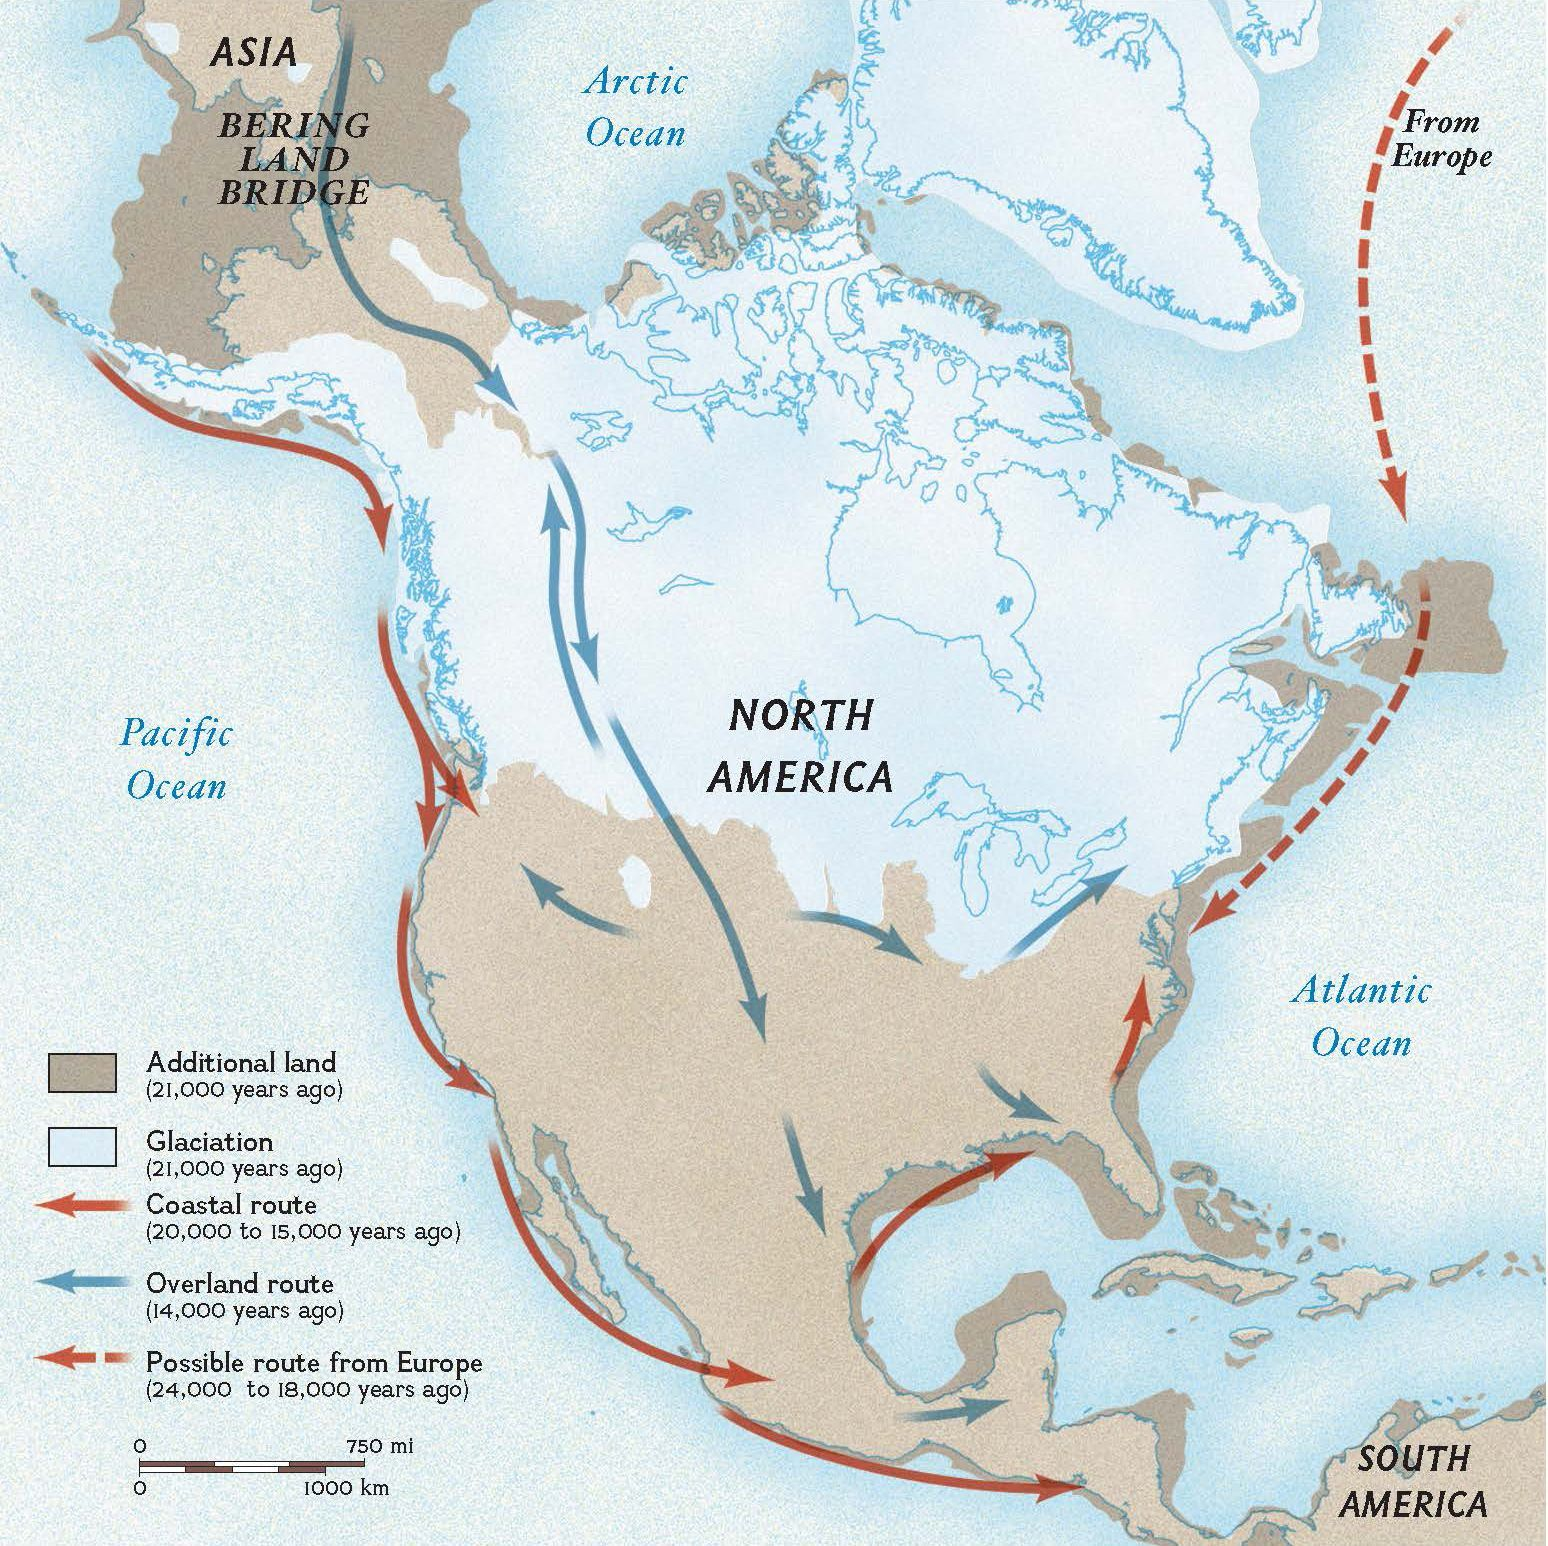 This Map Shows How A Land Bridge Connected The Continents